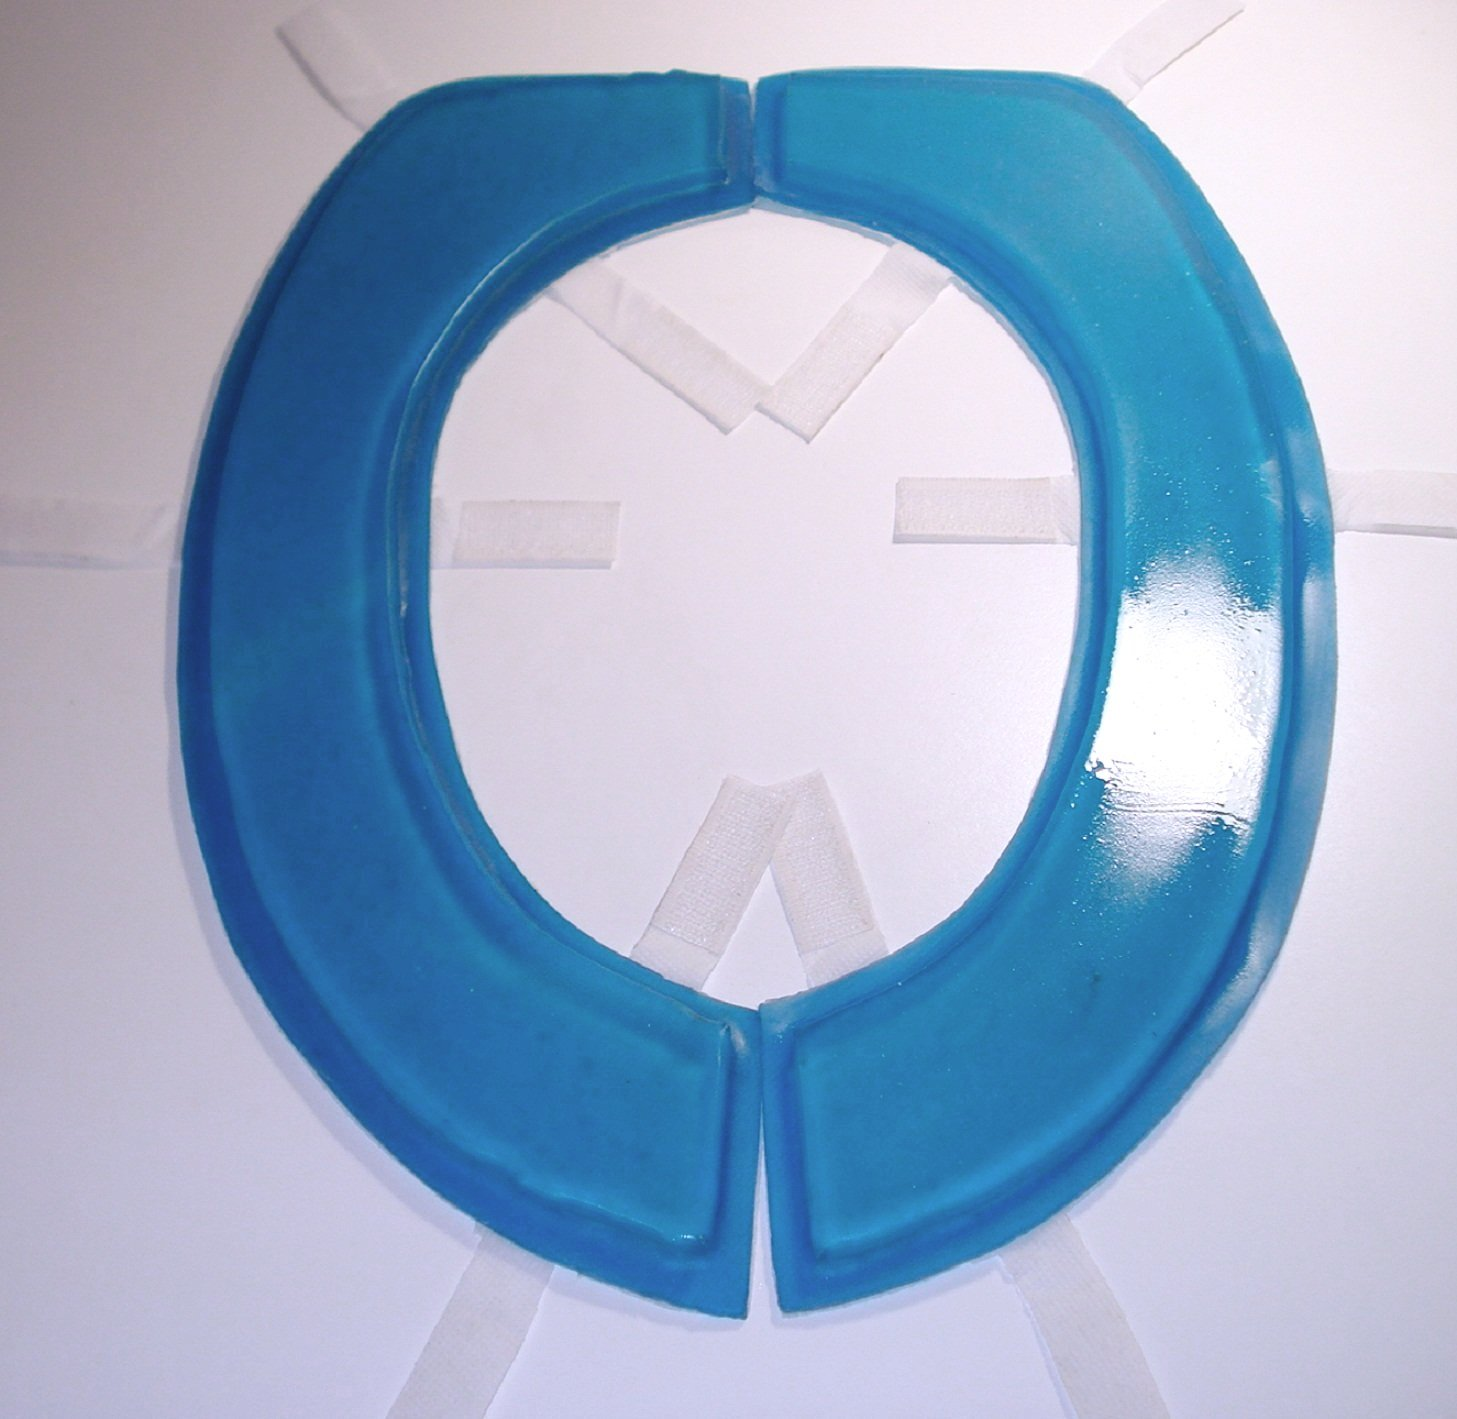 Fantastic Semi Liquid Polymer Gel Toilet Seat Cushion By Gel United Round Or Elongated Double Strength Attachment System Gel Commode Cushion Elongated Pdpeps Interior Chair Design Pdpepsorg